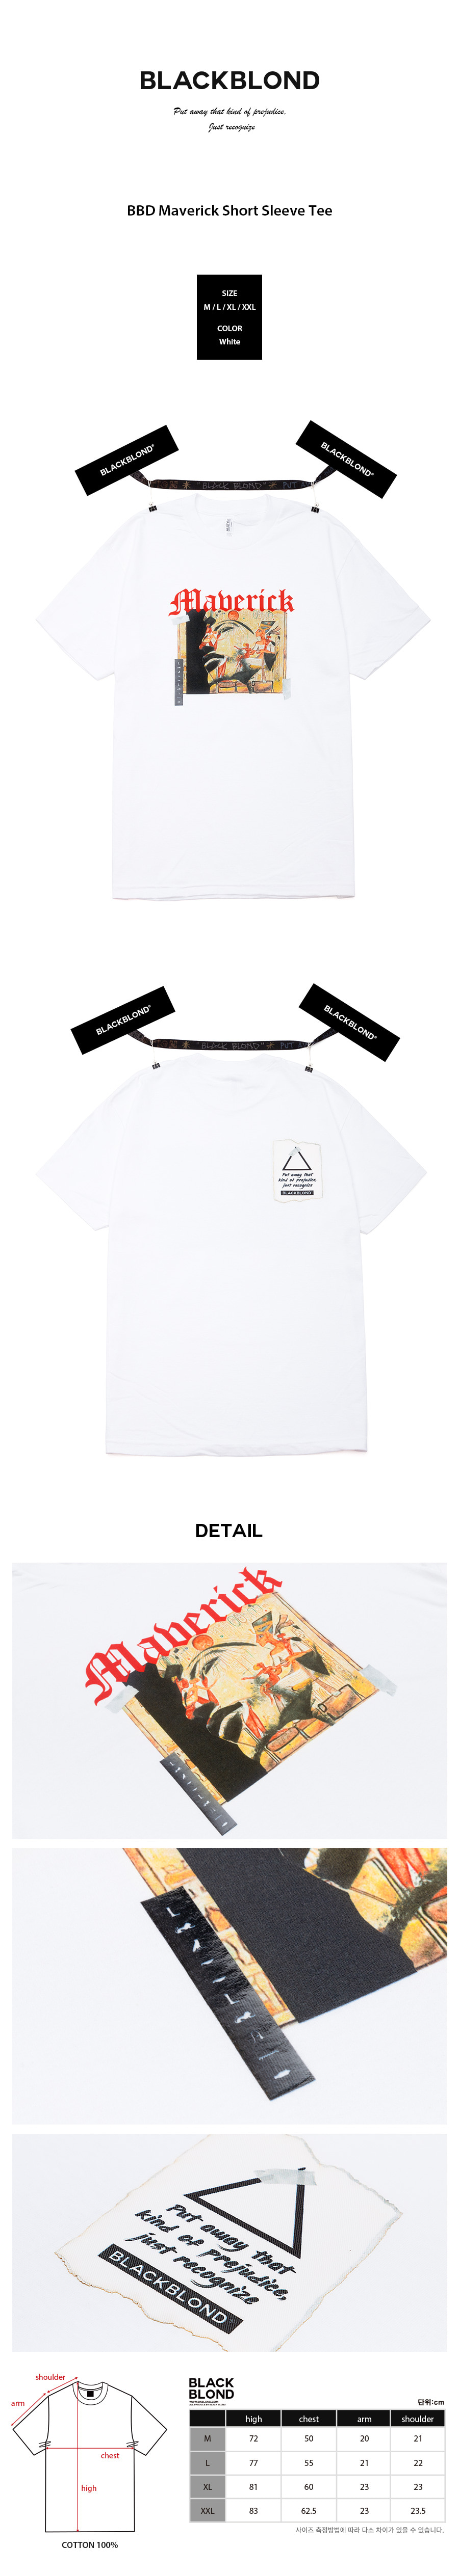 BLACKBLOND - BBD Maverick Short Sleeve Tee (White)